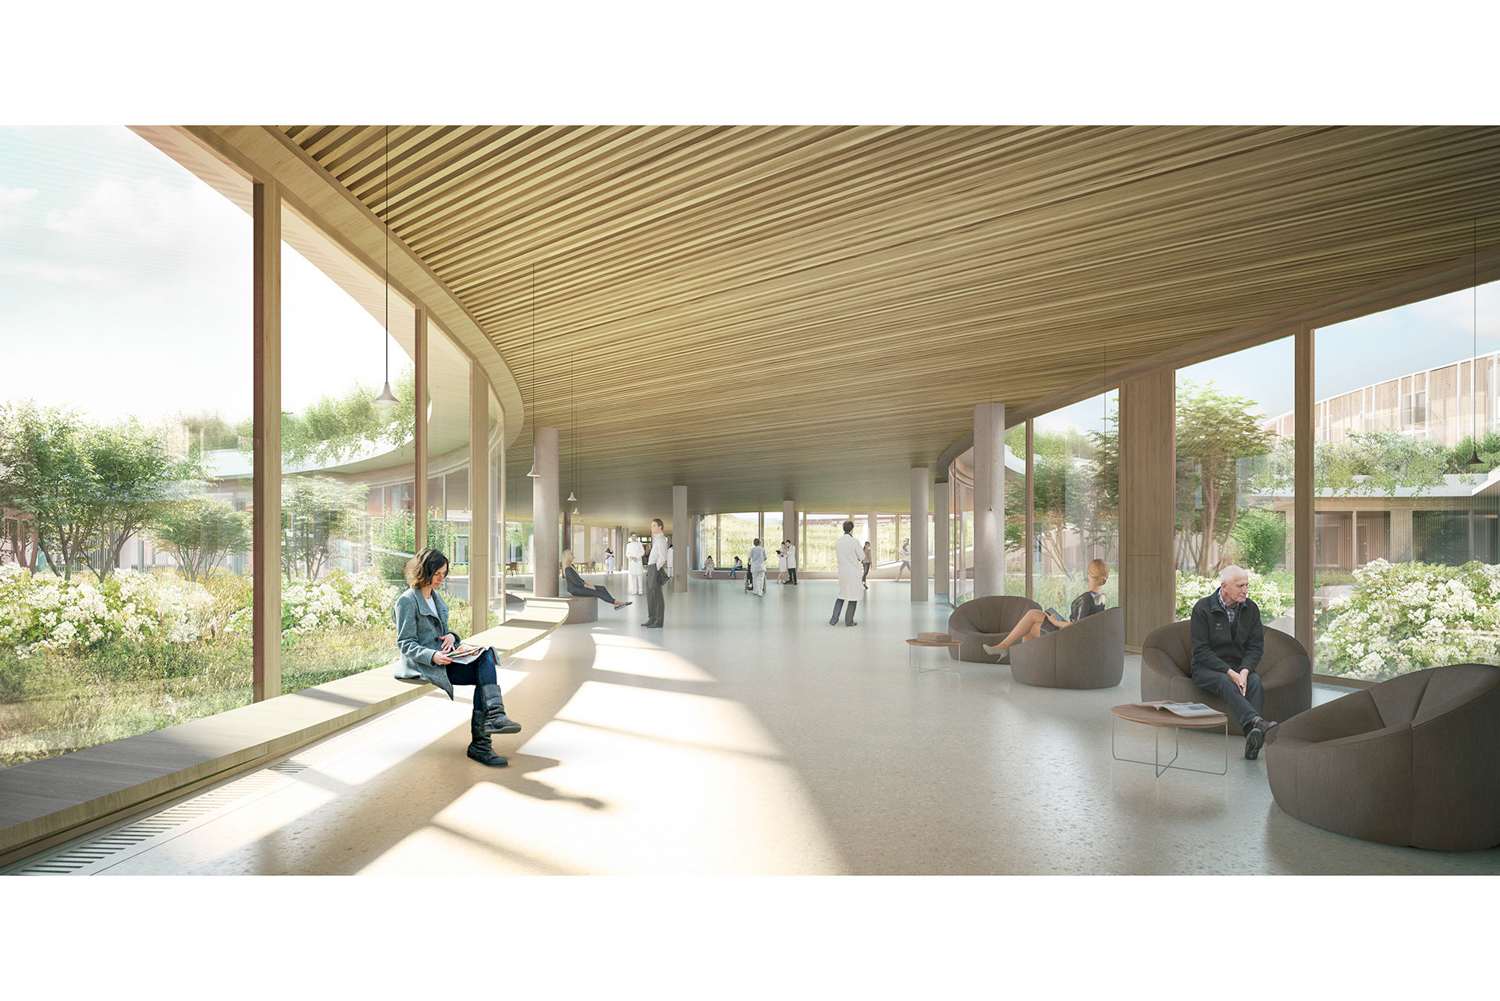 The New North Zealand Hospital is surrounded by nature, image courtesy Herzog & de Meuron via UCSF